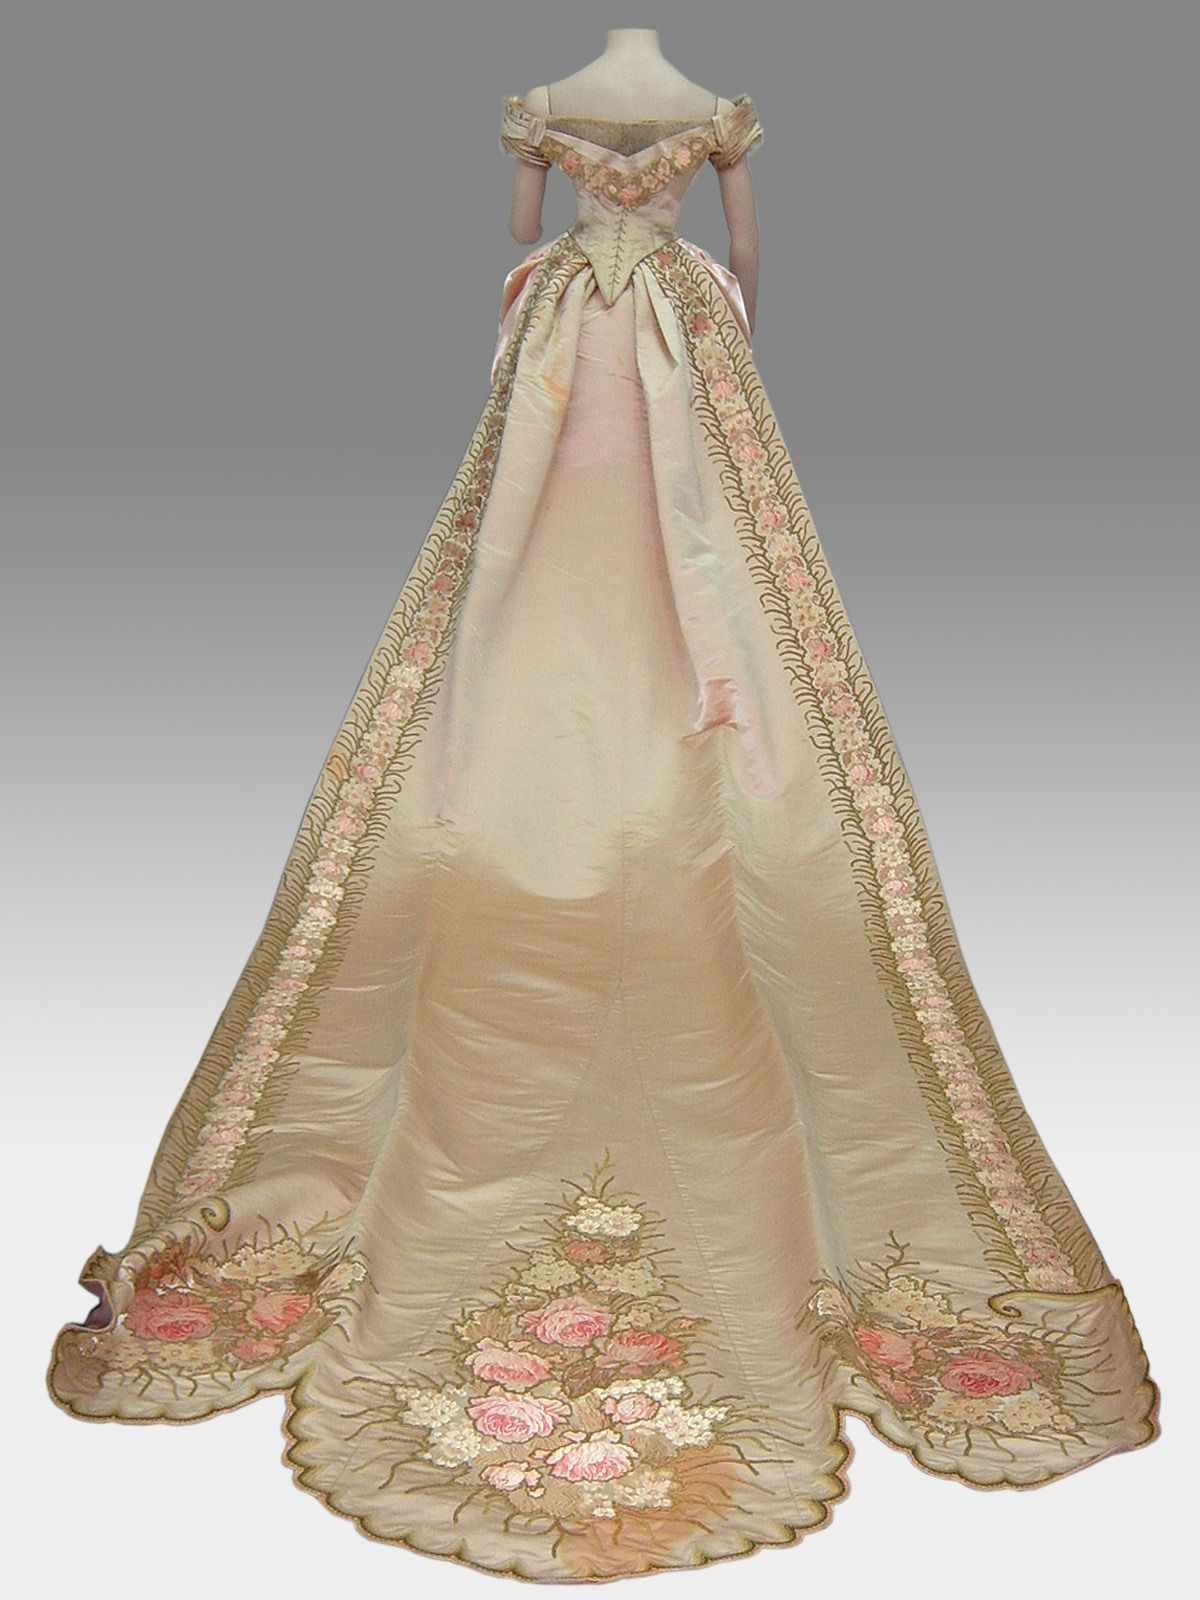 Fawn velveteen u court dress from the national historical